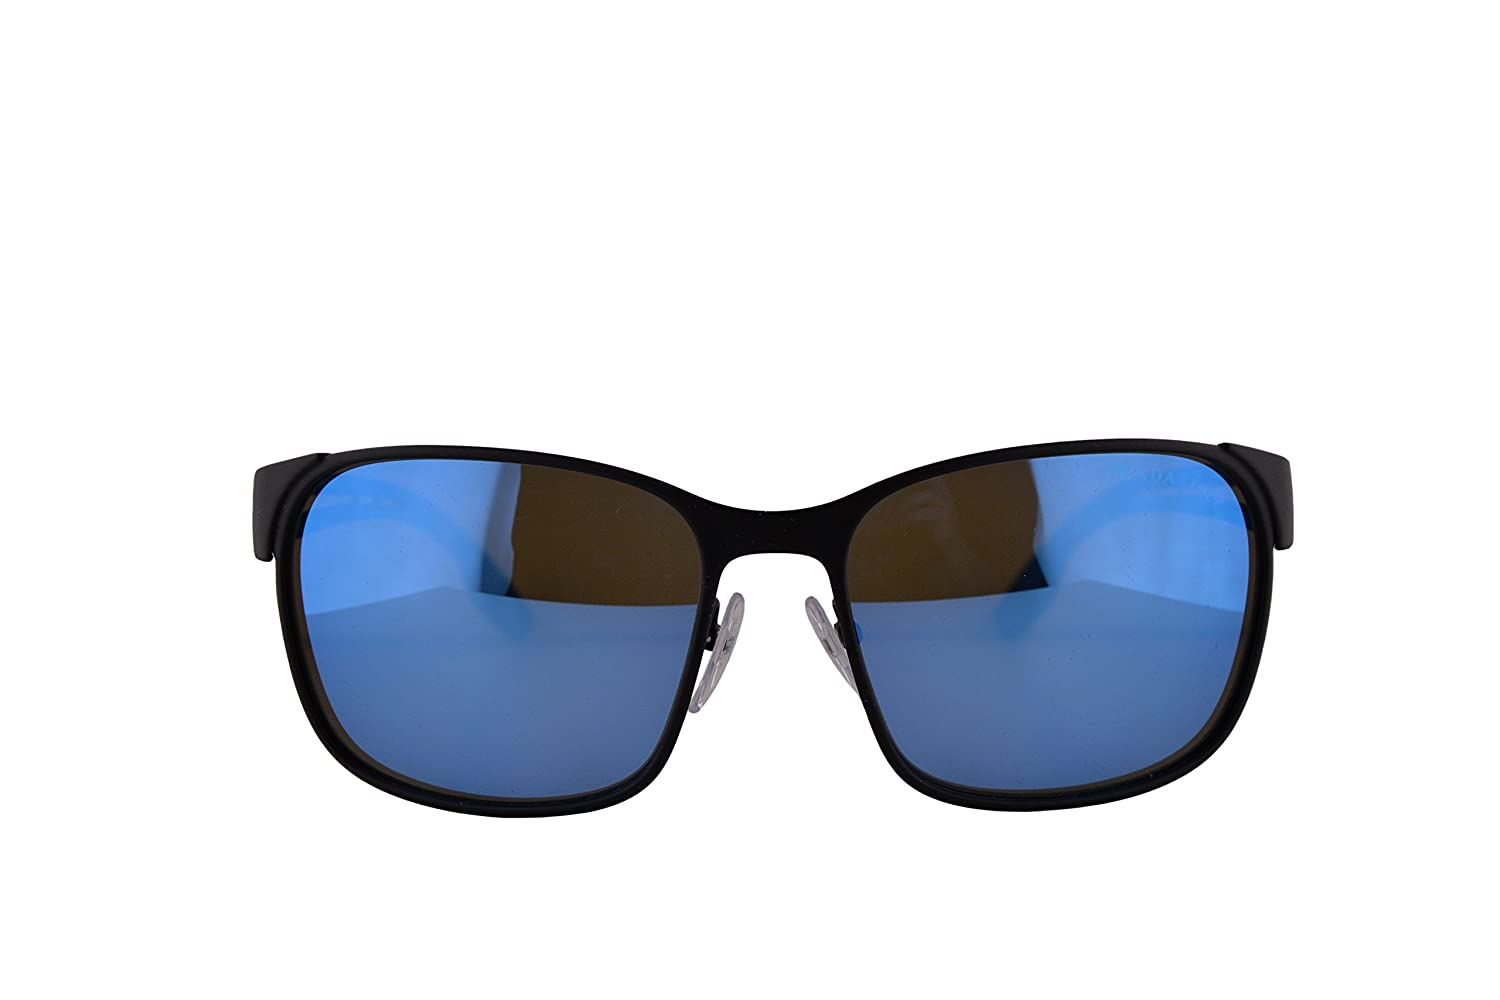 3c926f6bfd Oakley Dictate 4 0 Review « One More Soul